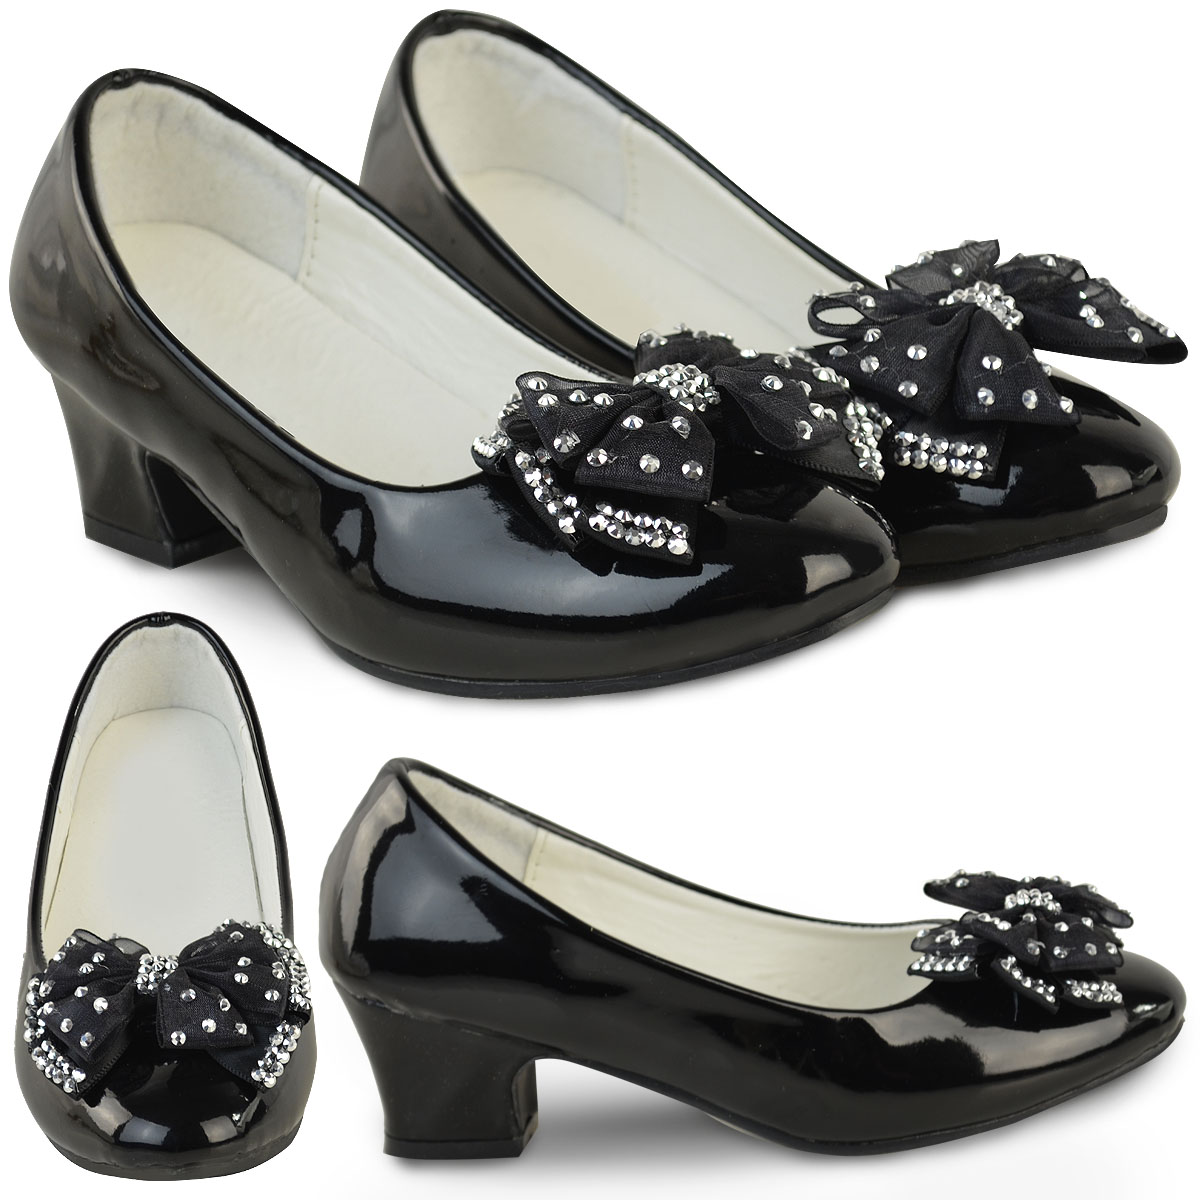 3ee129874ac Details about Kids Girls Childrens Low Heel Sandals Smart Bow Diamante  Sparkly New Black Shoes